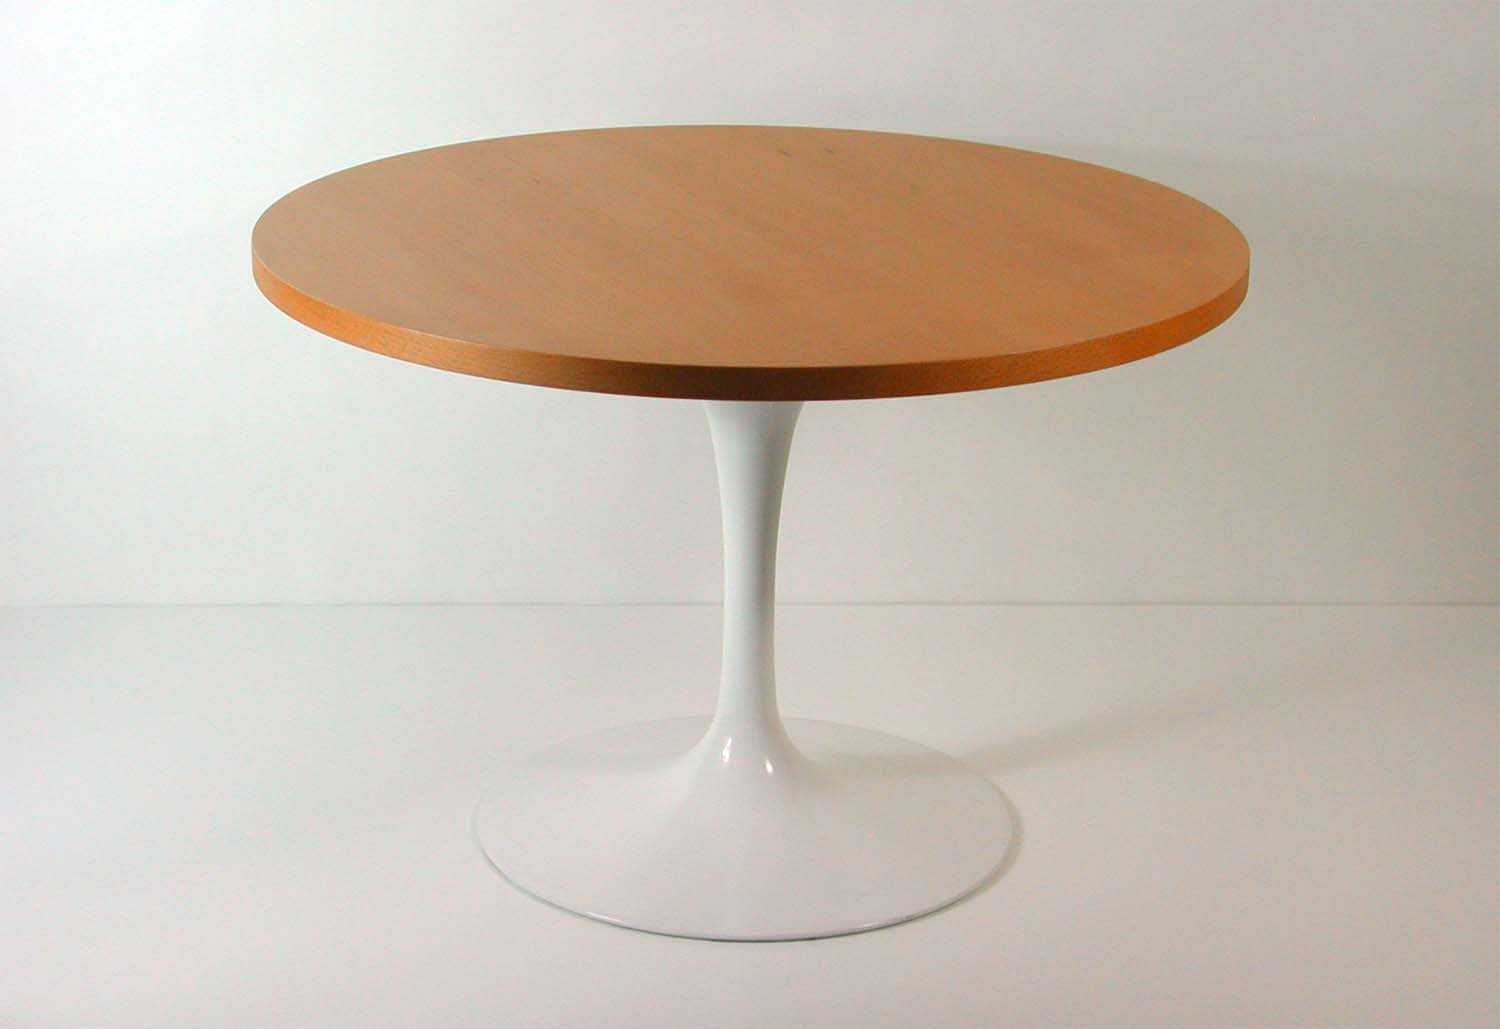 Saarinen Knoll Table Tulip Base Lazy Susan Coffee Table By Eero Saarinen For Knoll